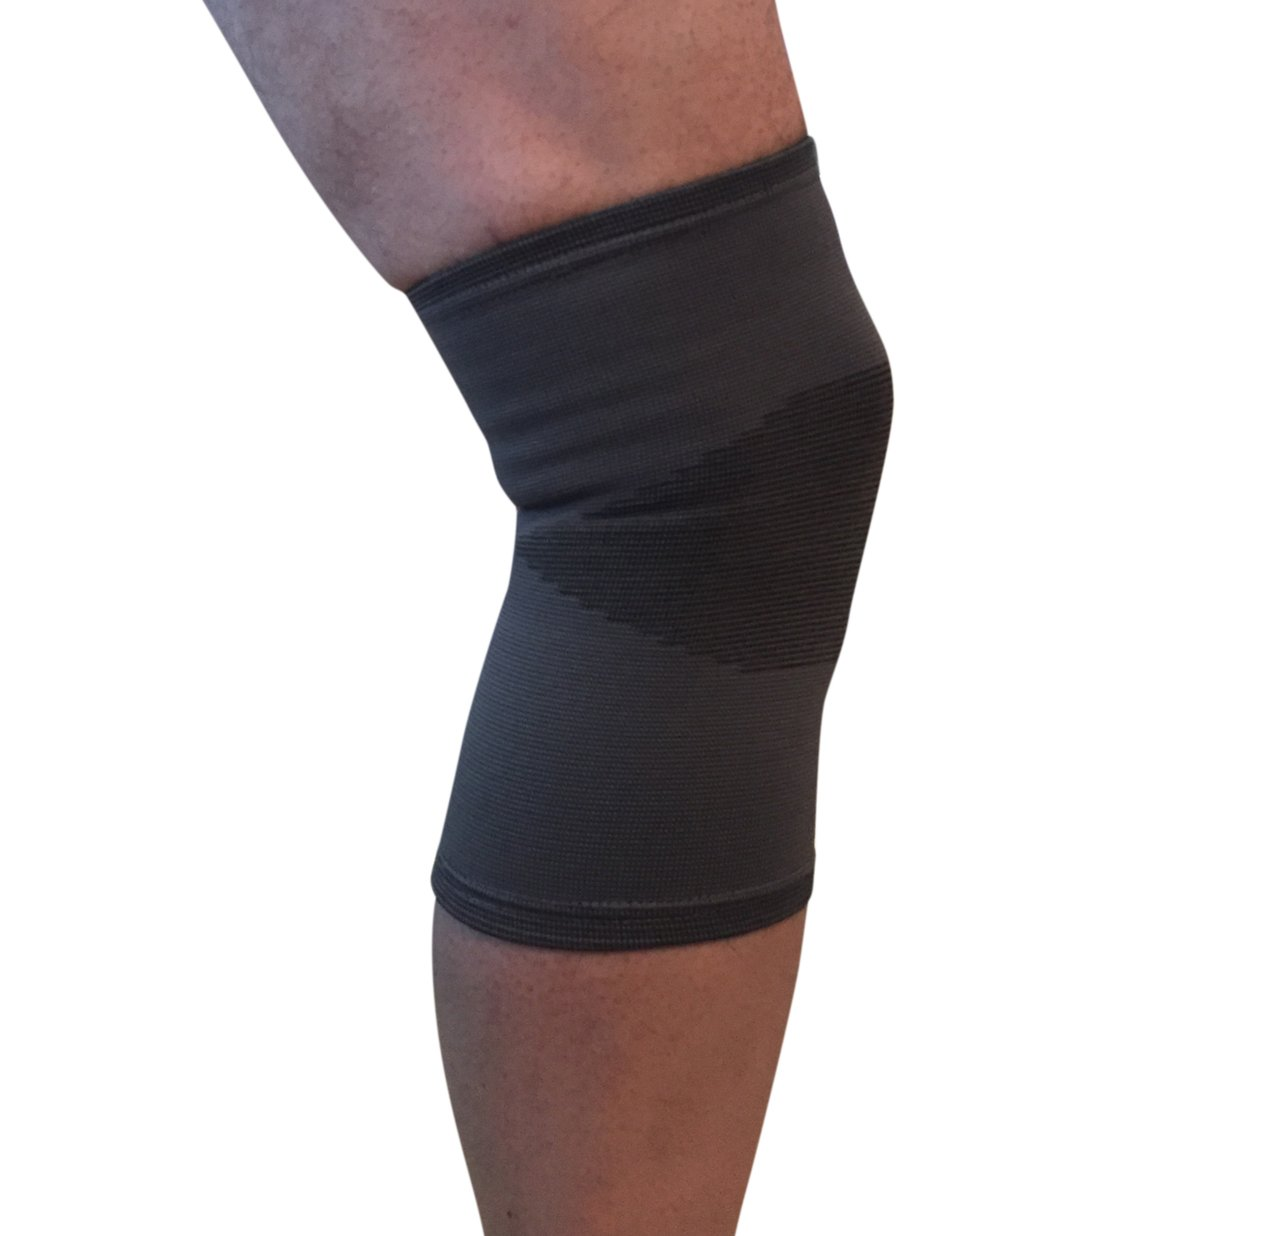 Ceramic Therapeutic Knee Brace, BeneFab by Sore No-More